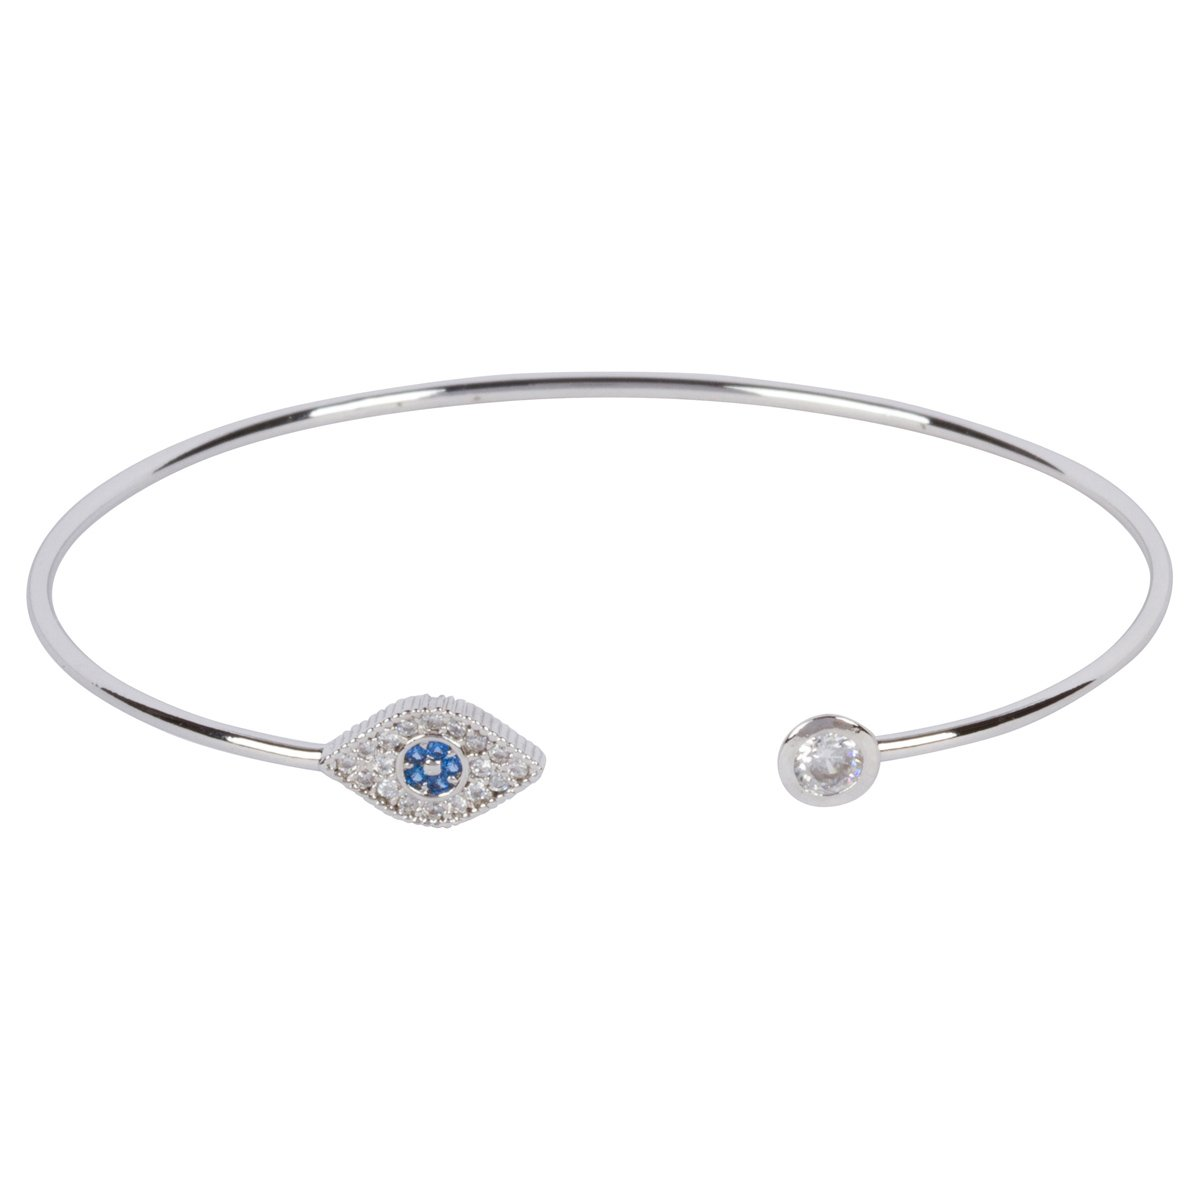 Brianna Alexis 925 Sterling Silver Pave Evil Eye Double End Bangle Bracelet (rhodium-plated-silver)